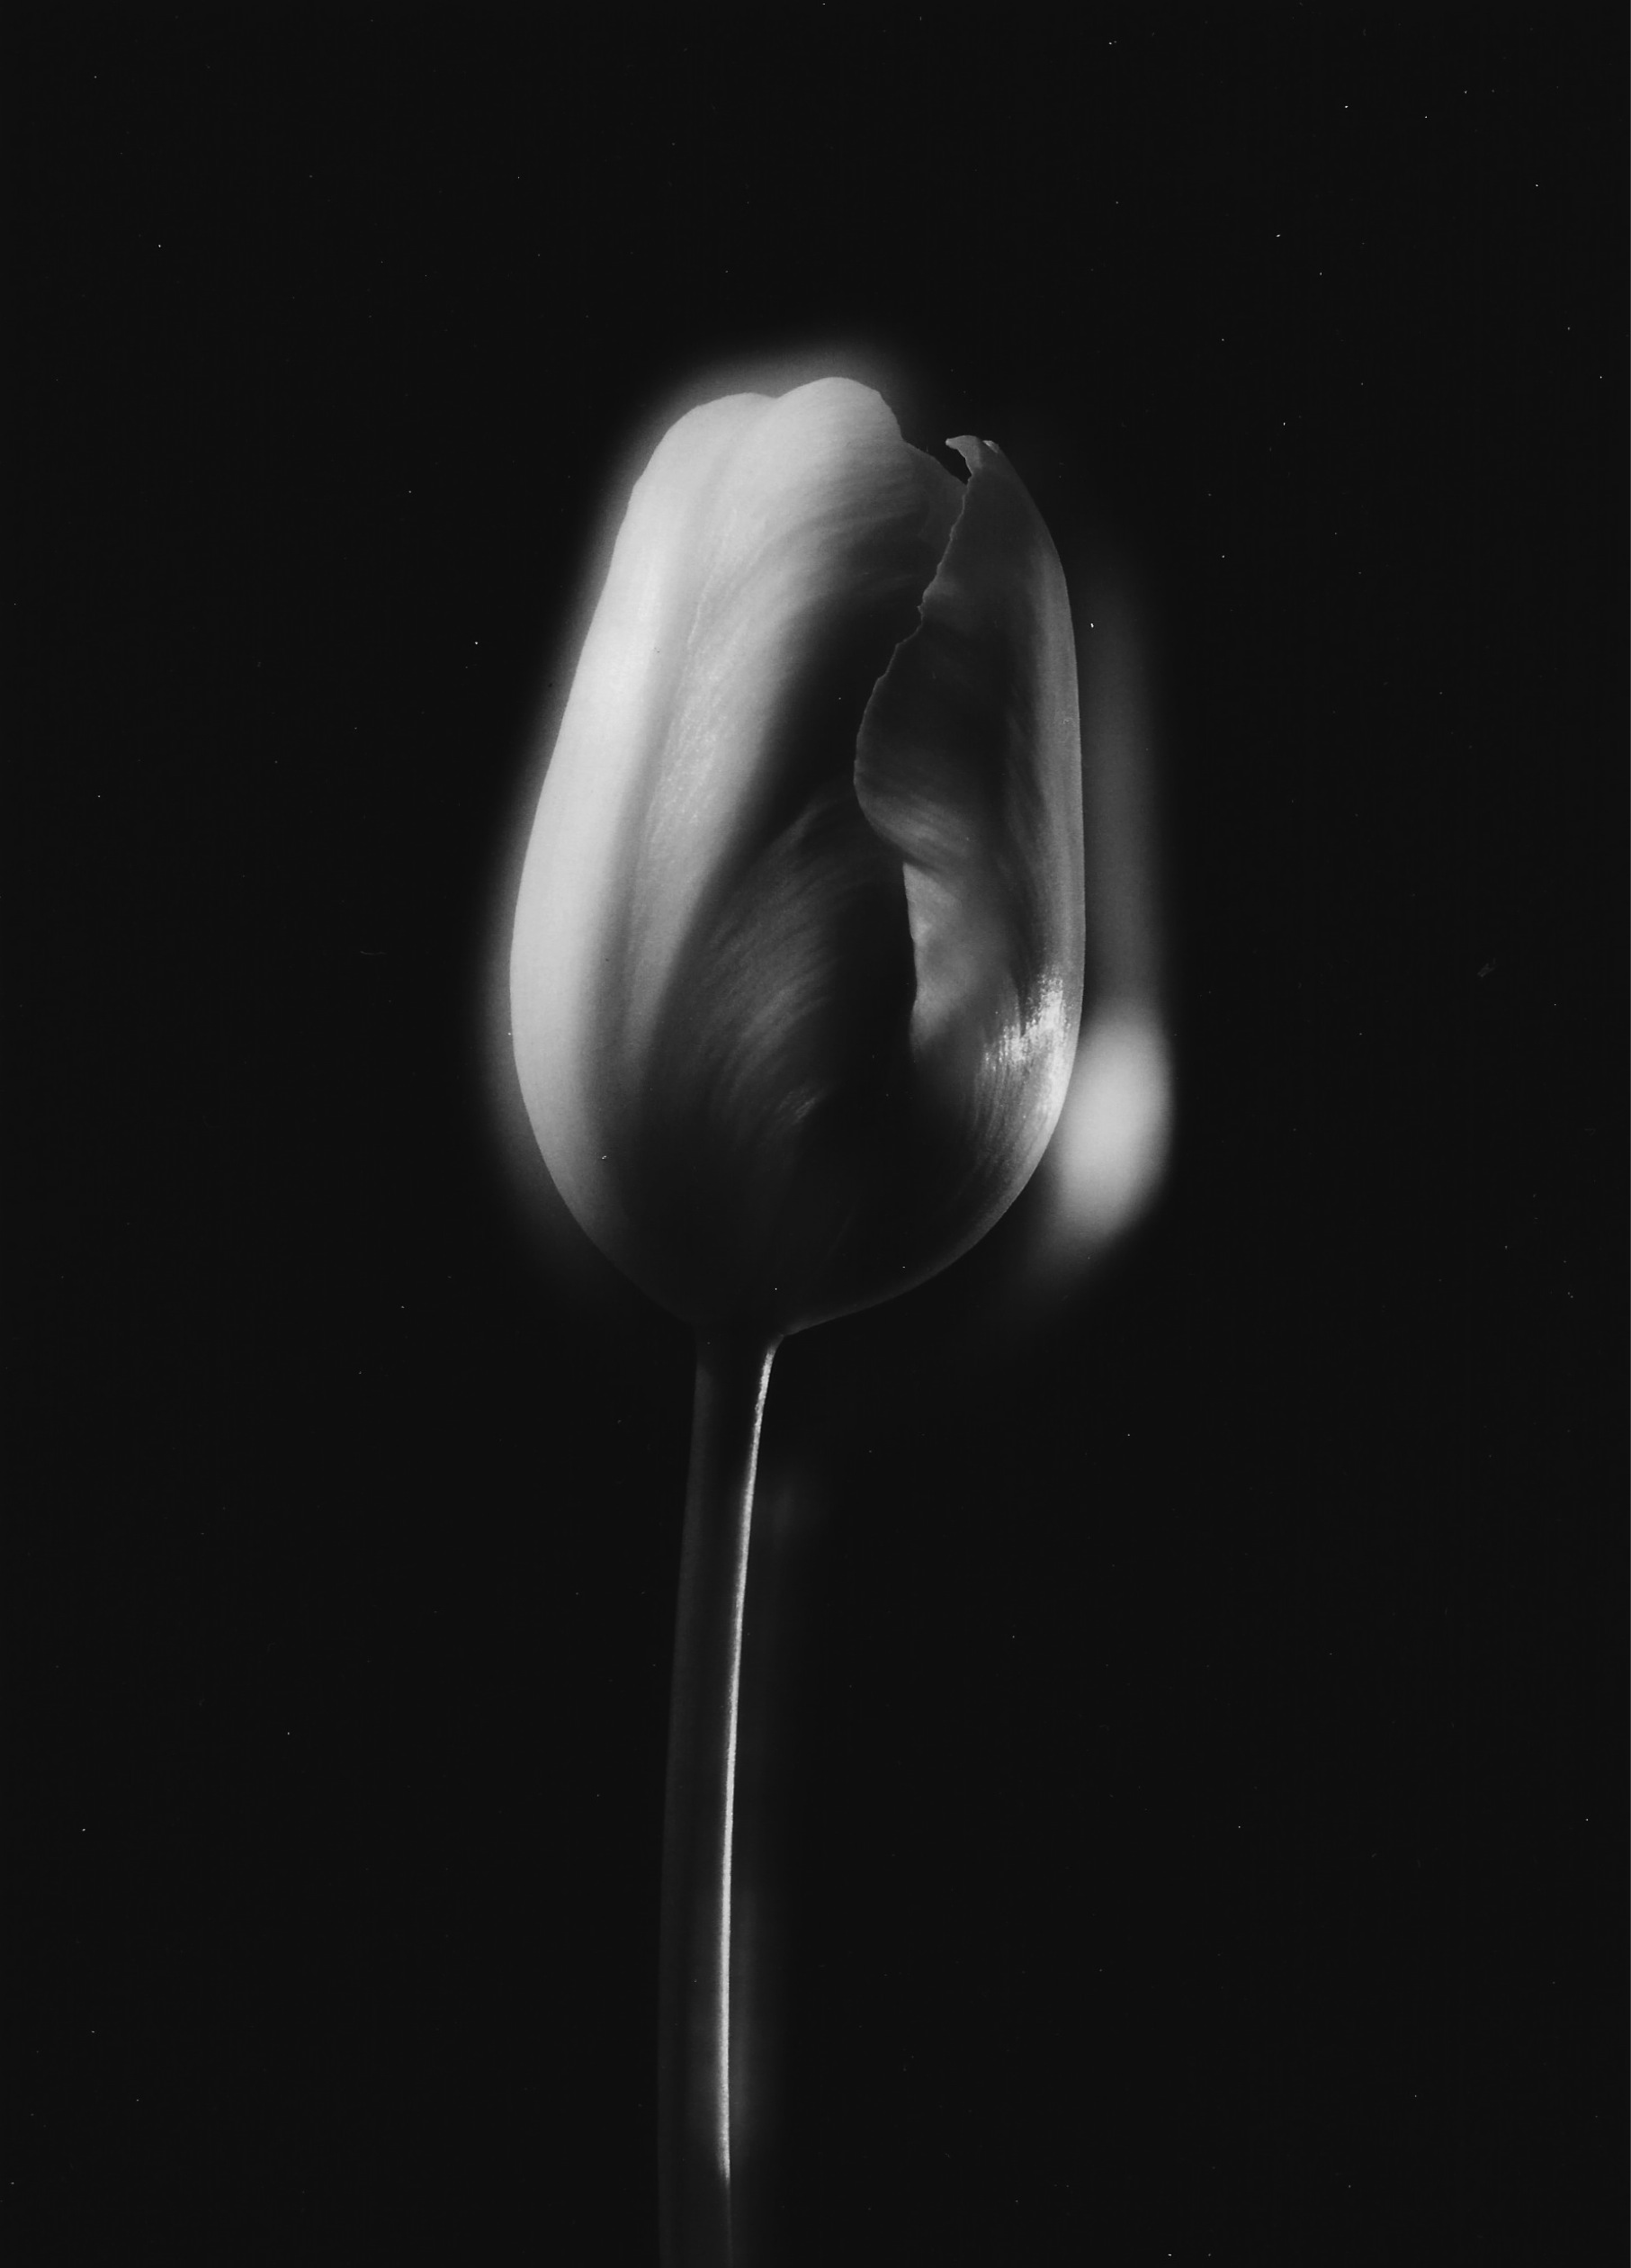 Untitled , c. 1987  Gelatin silver photograph.  8 3/8 x 6 inches